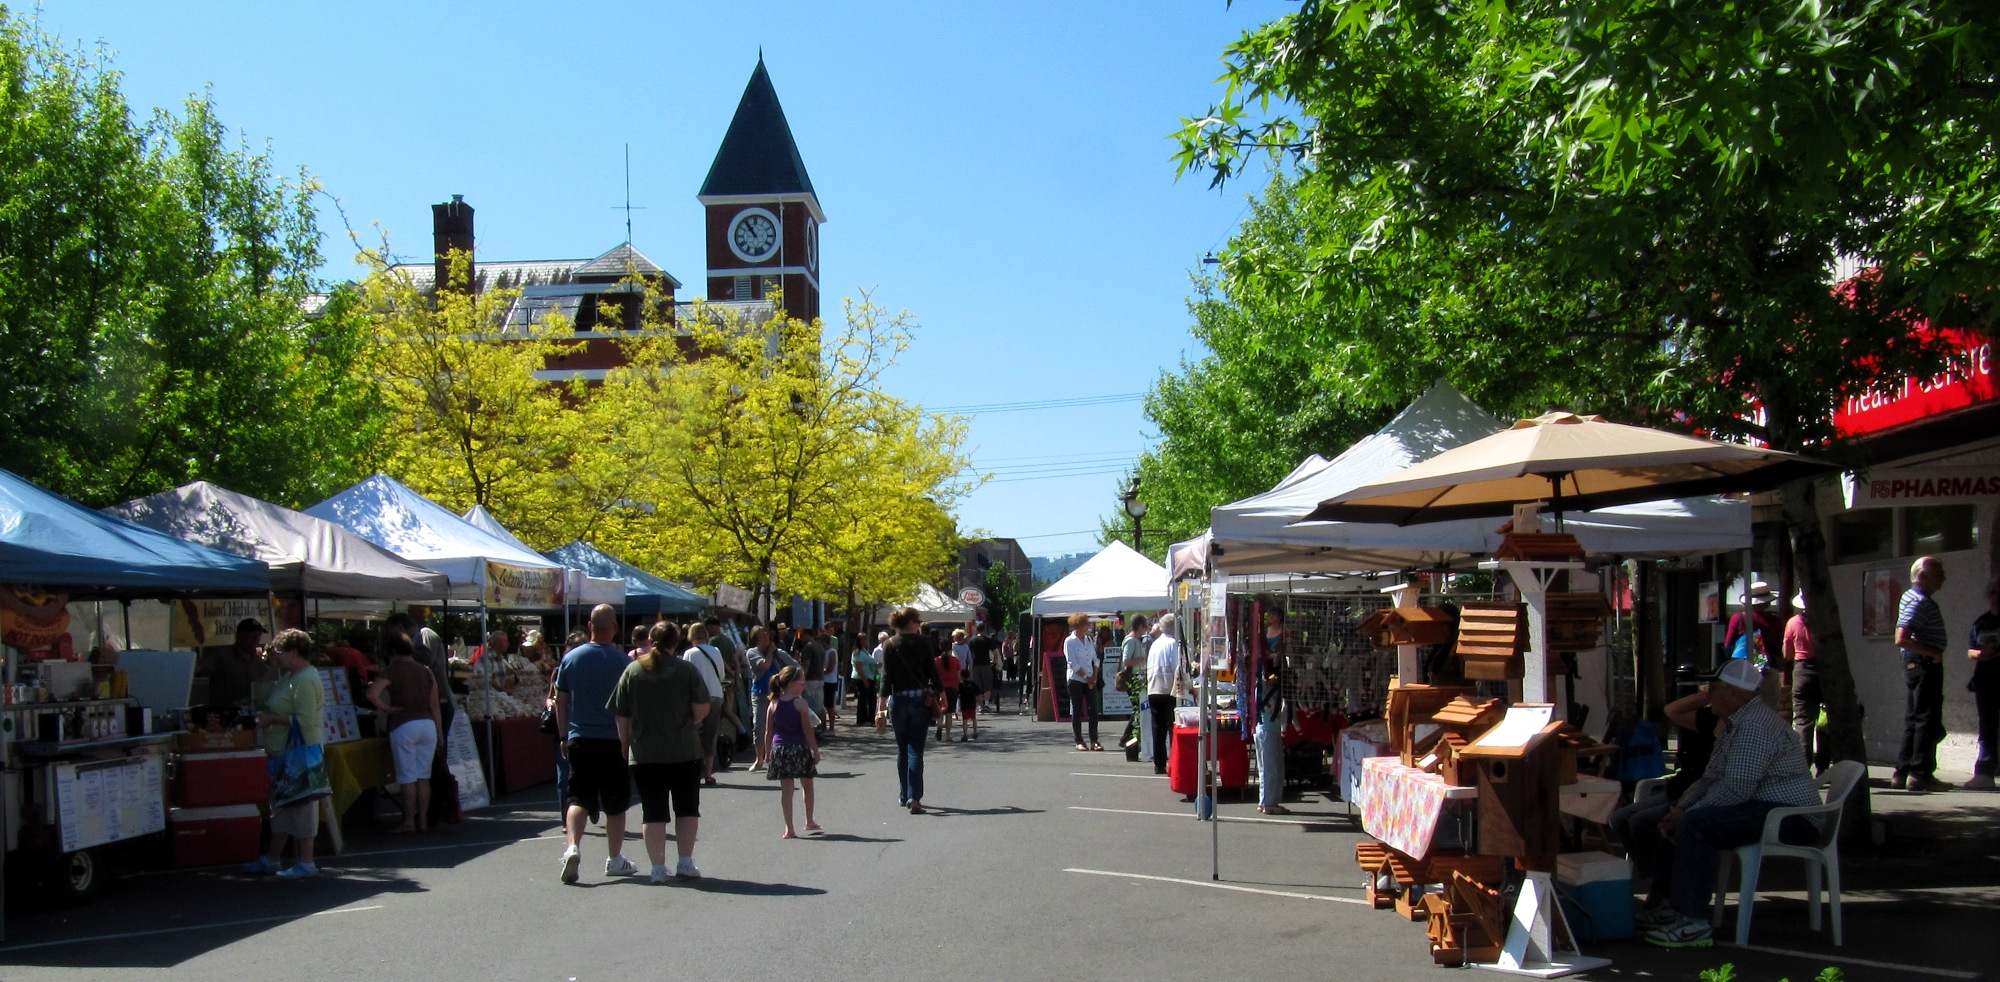 An outdoor market is set up on a sunny city street.